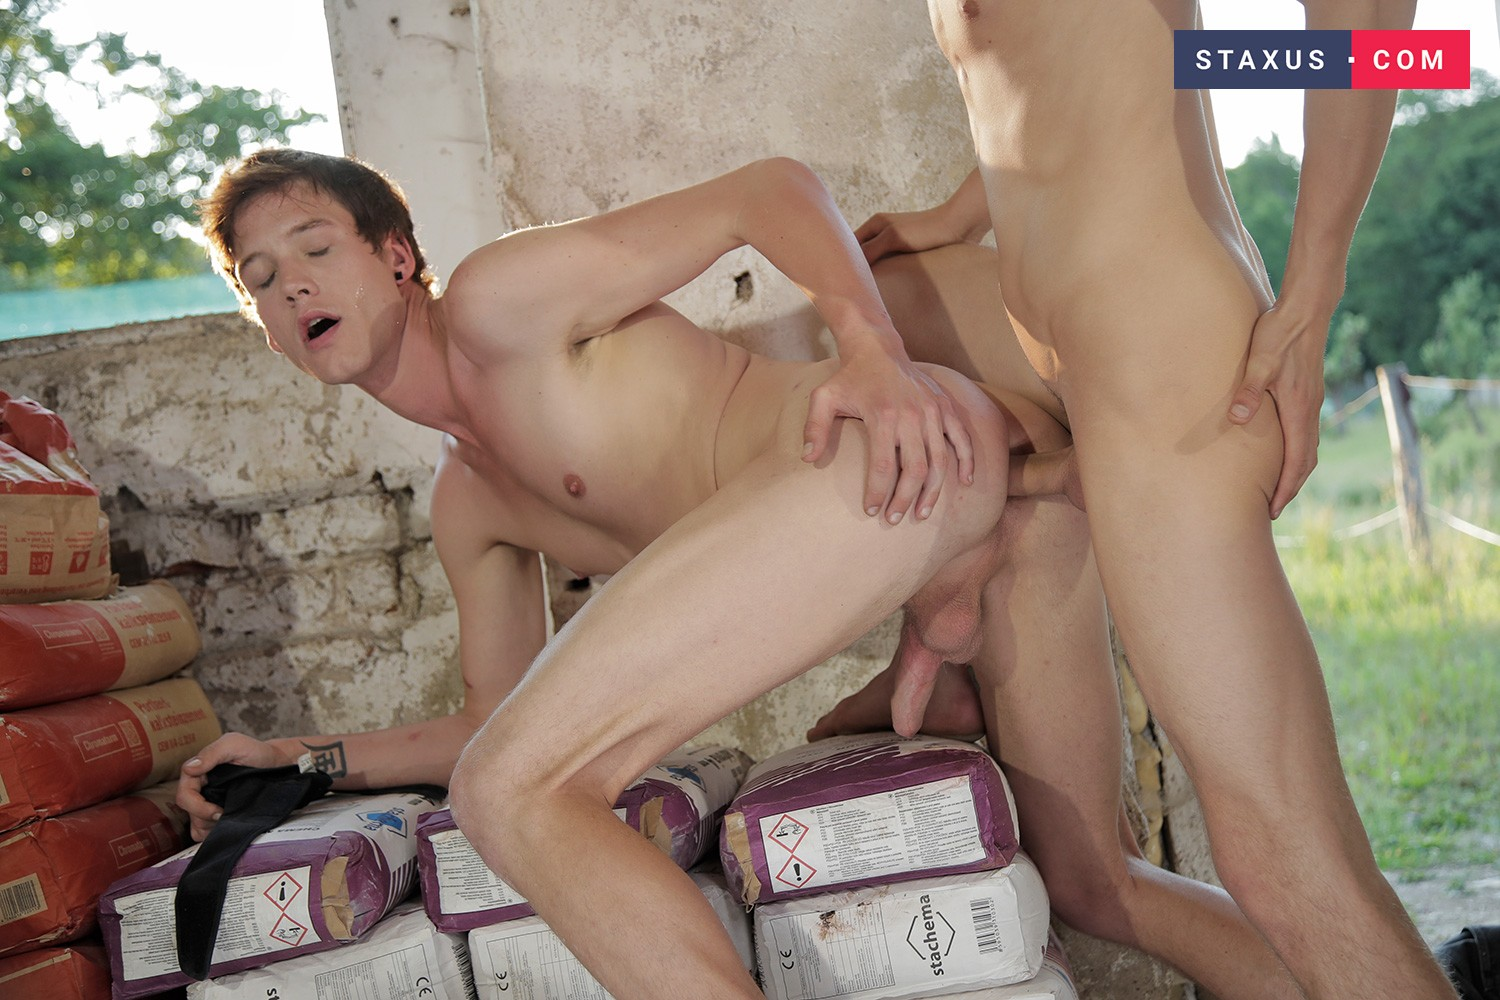 Uncut Cocks Twinks Sports Rimming Raw Jockstrap Gay Footballer David Hollister Connor Rex Blowjob Blonds Big Dick Bareback Ball Sucking Anal Sex  Staxus: Overawed Fan Gets His Hungry Hole Called To Hot Raw Service! (David Hollister, Connor Rex)